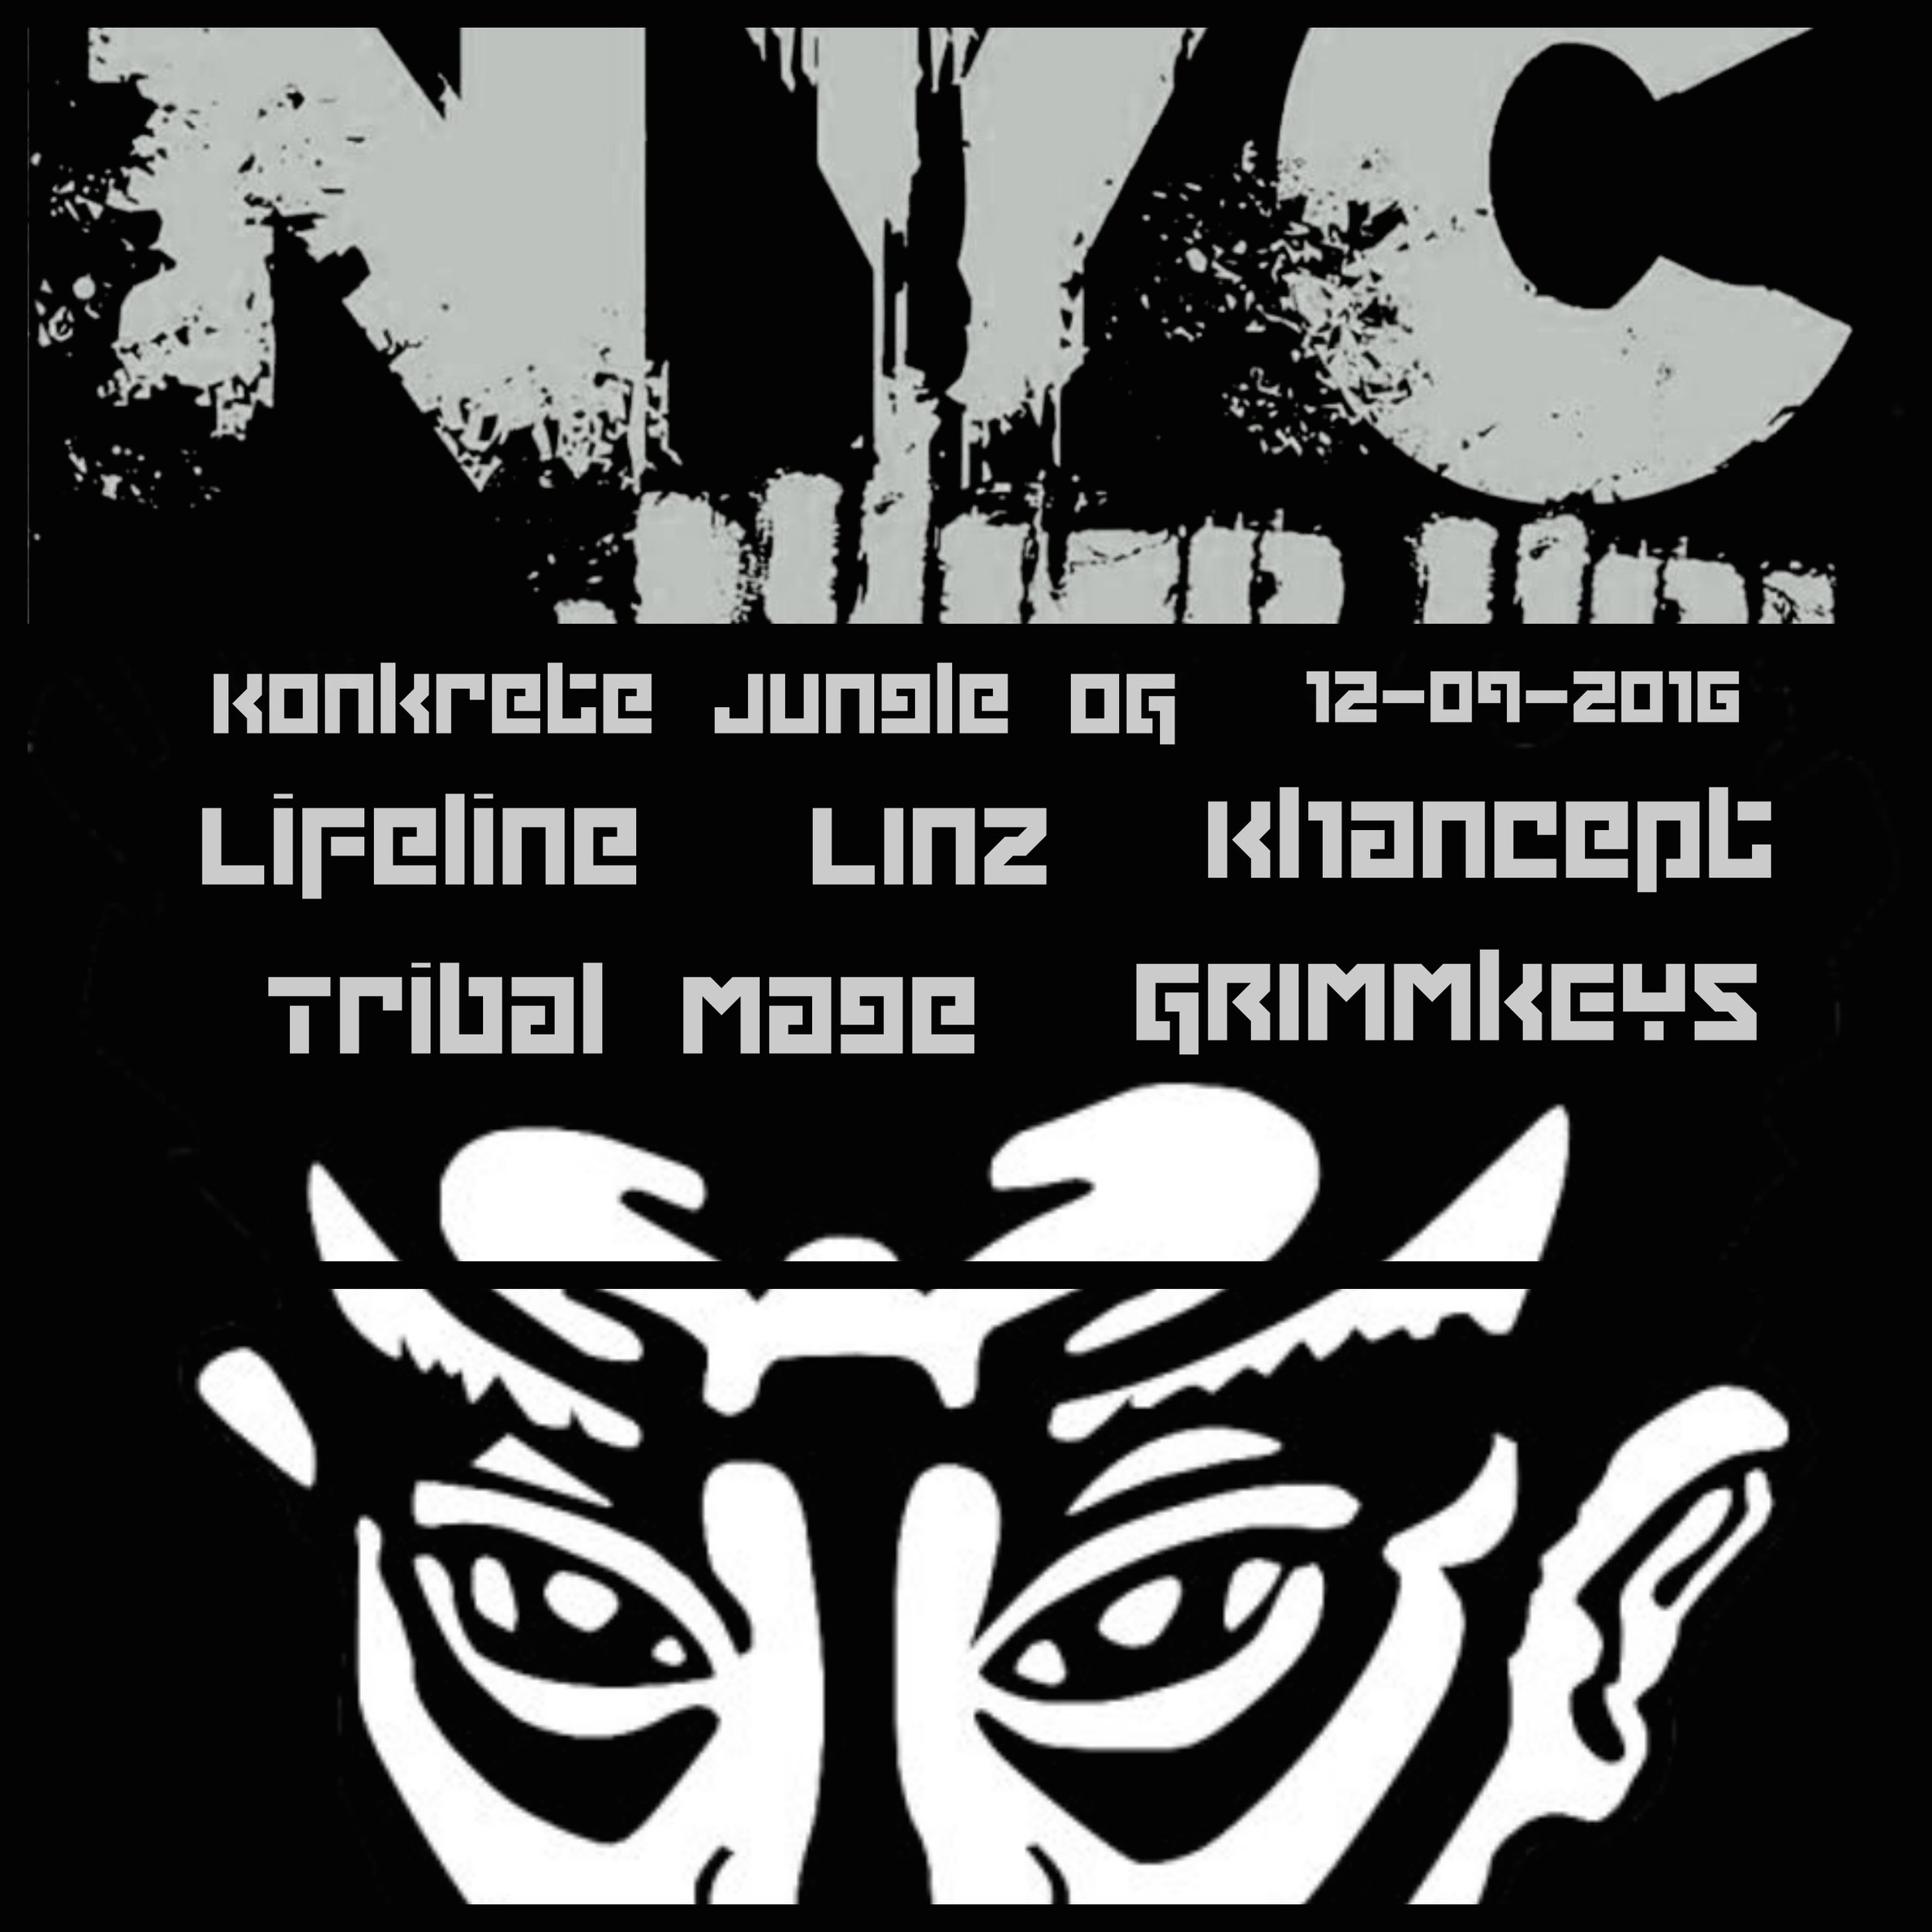 Konkrete Jungle OG NYC Jump Up cover 7_Fotor.jpg